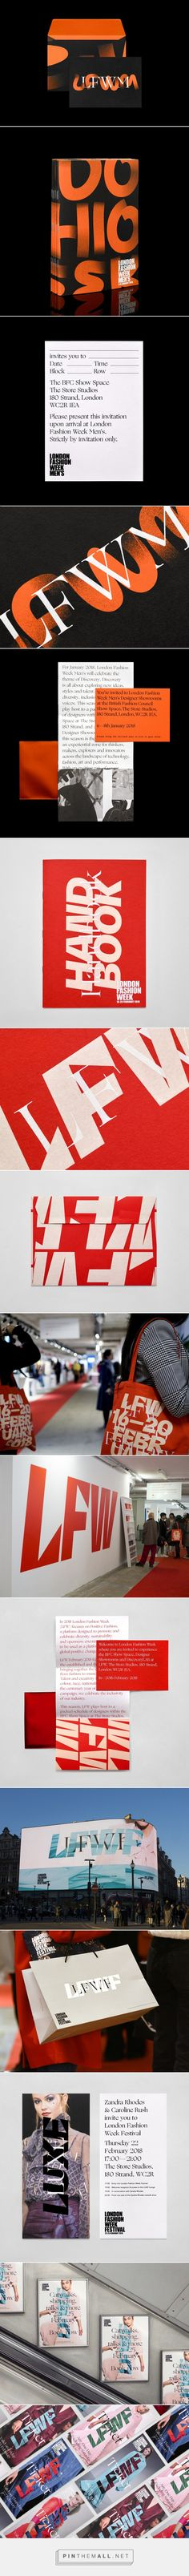 New Graphic Identity for London Fashion Week by Pentagram — BP&O - created via https://pinthemall.net